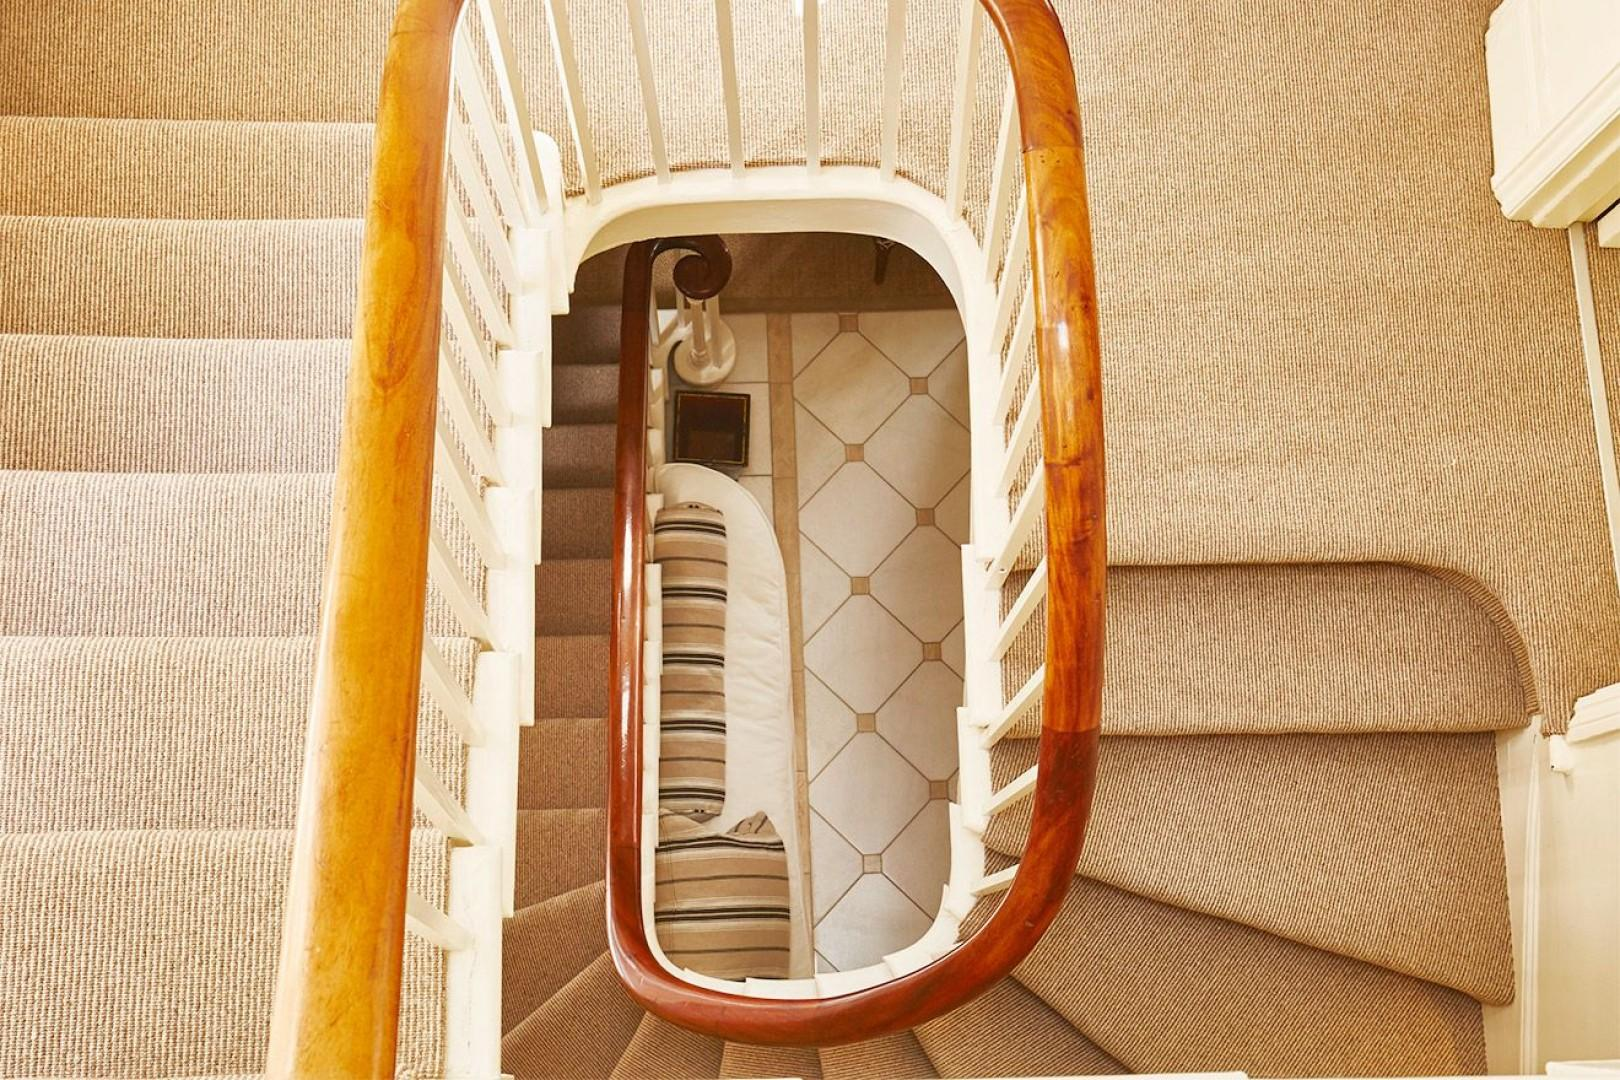 View down the open spiral of the staircase